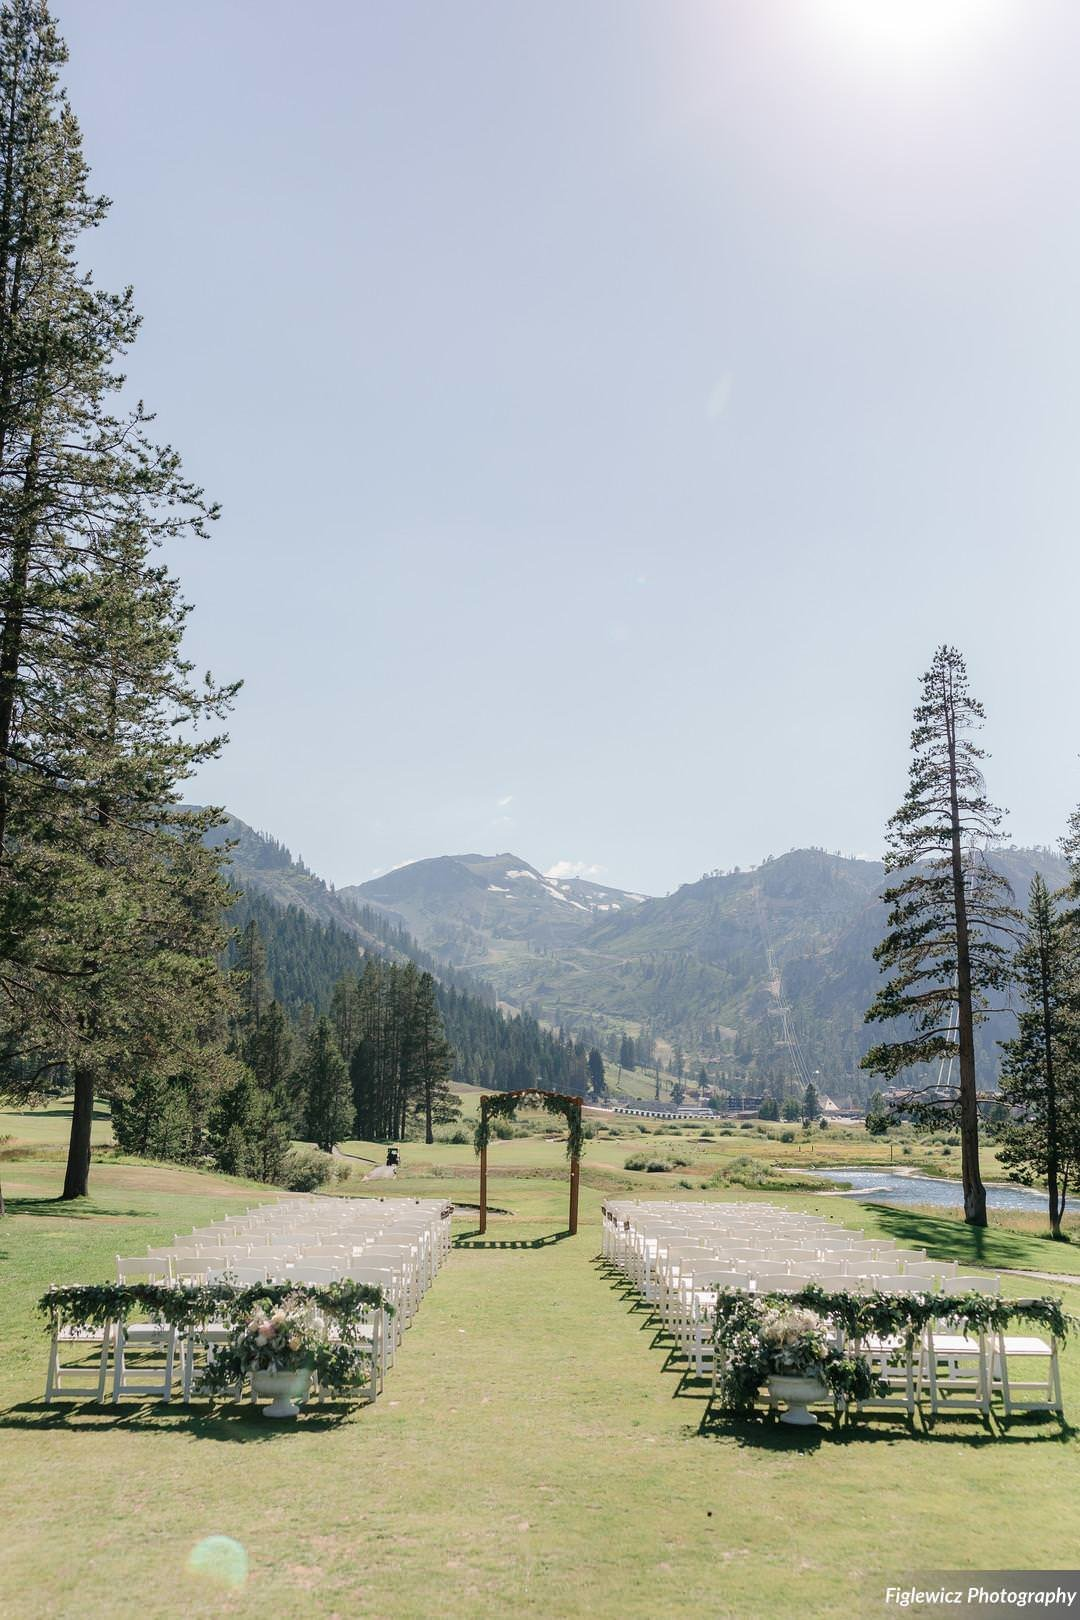 Garden_Tinsley_FiglewiczPhotography_LakeTahoeWeddingSquawValleyCreekTaylorBrendan00076_big